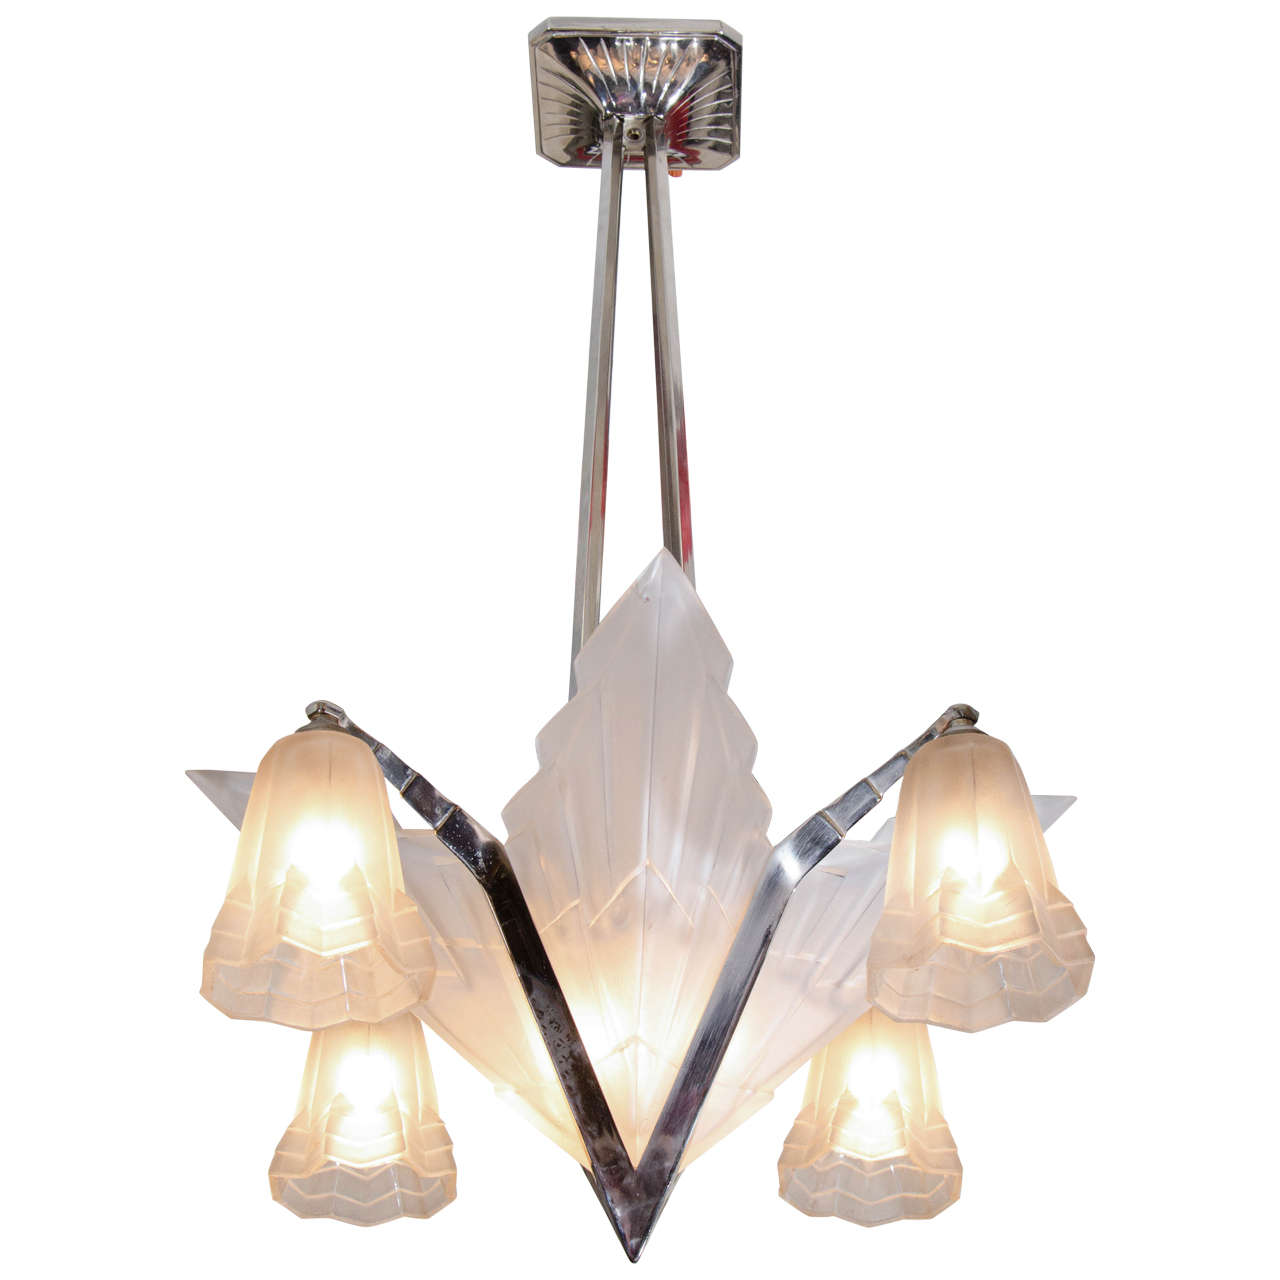 Art Deco French Nickel and Frosted Glass Chandelier by David Gueron for Degue